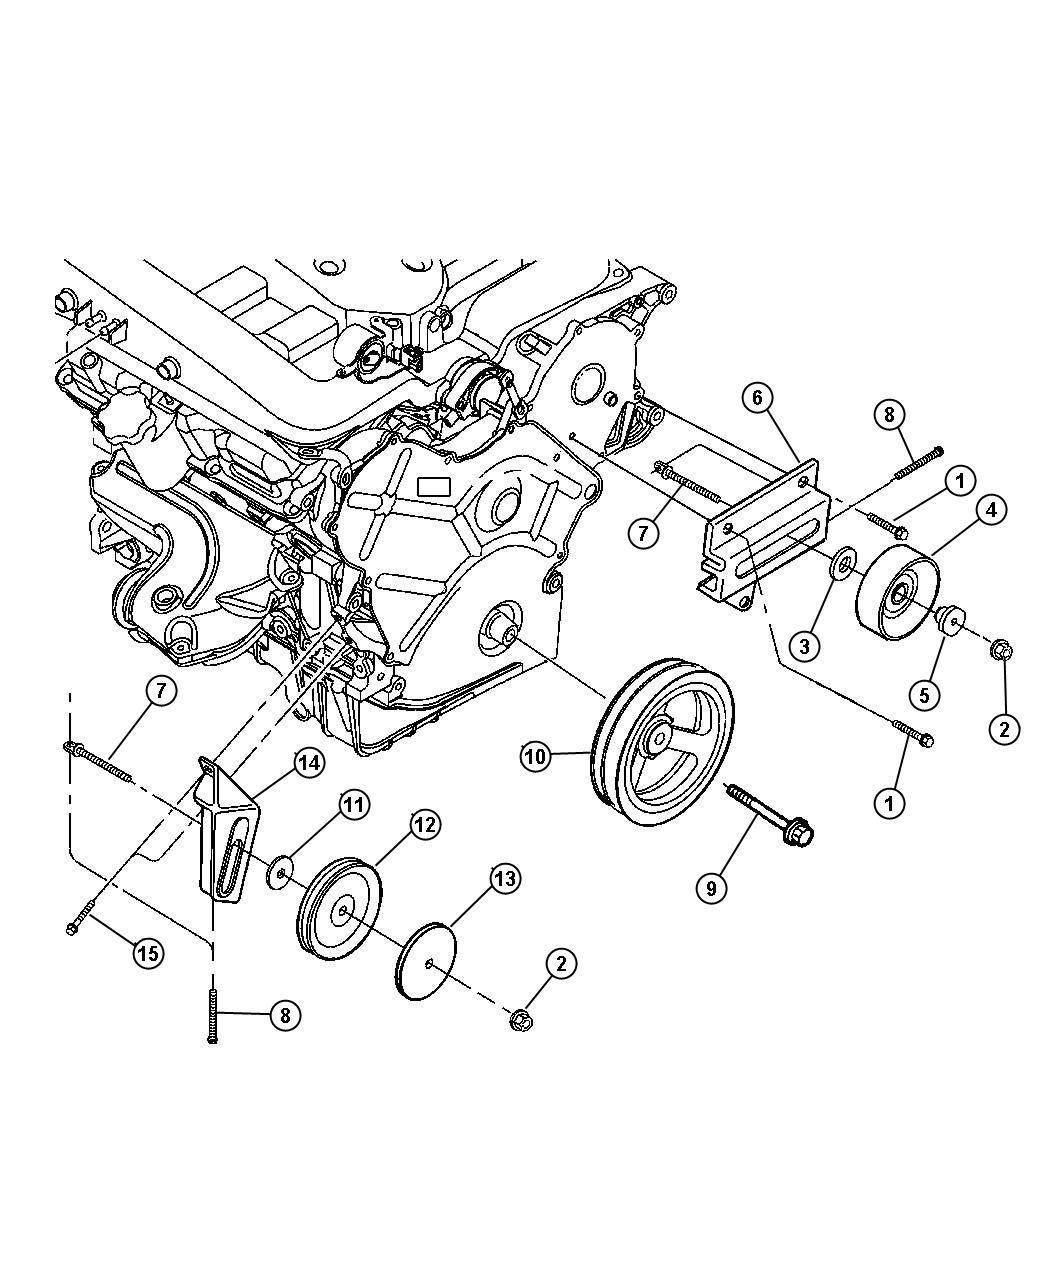 2005 chrysler 300c front suspension diagram